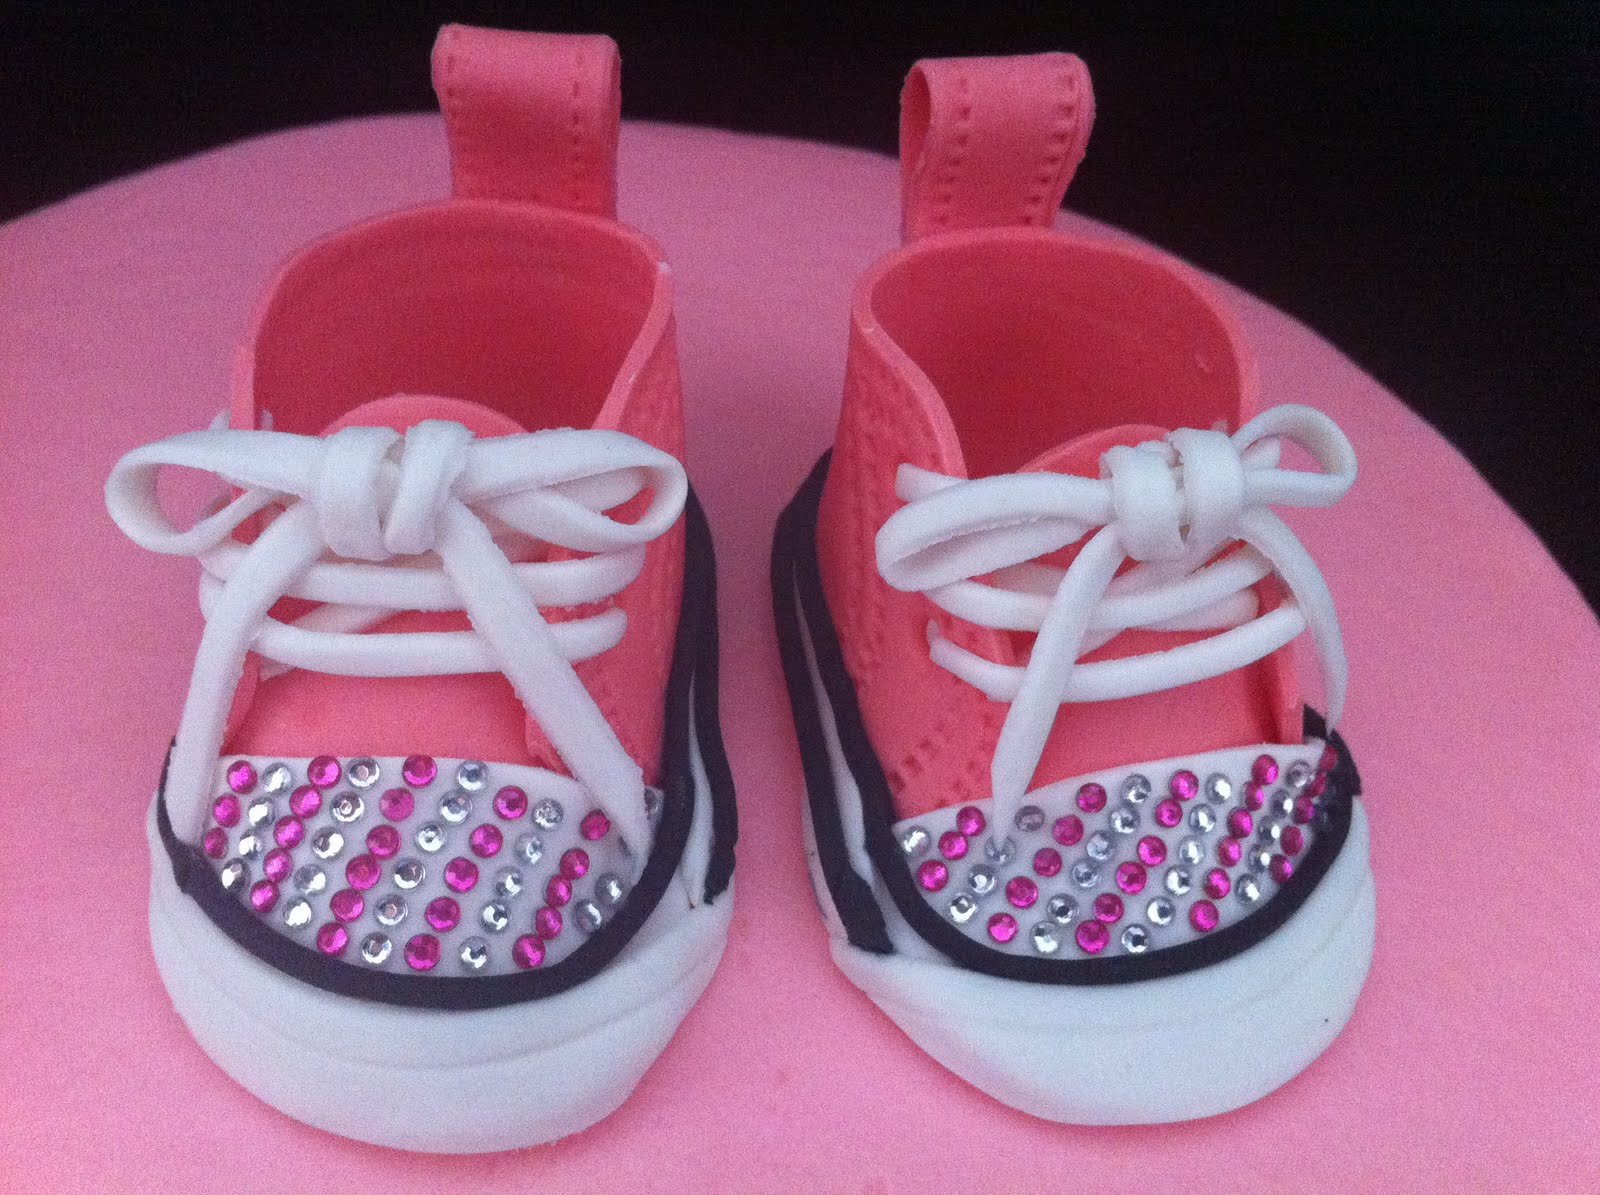 b0580f812affe2 Baby Girl Converse Shoes - My Sweet Zepol